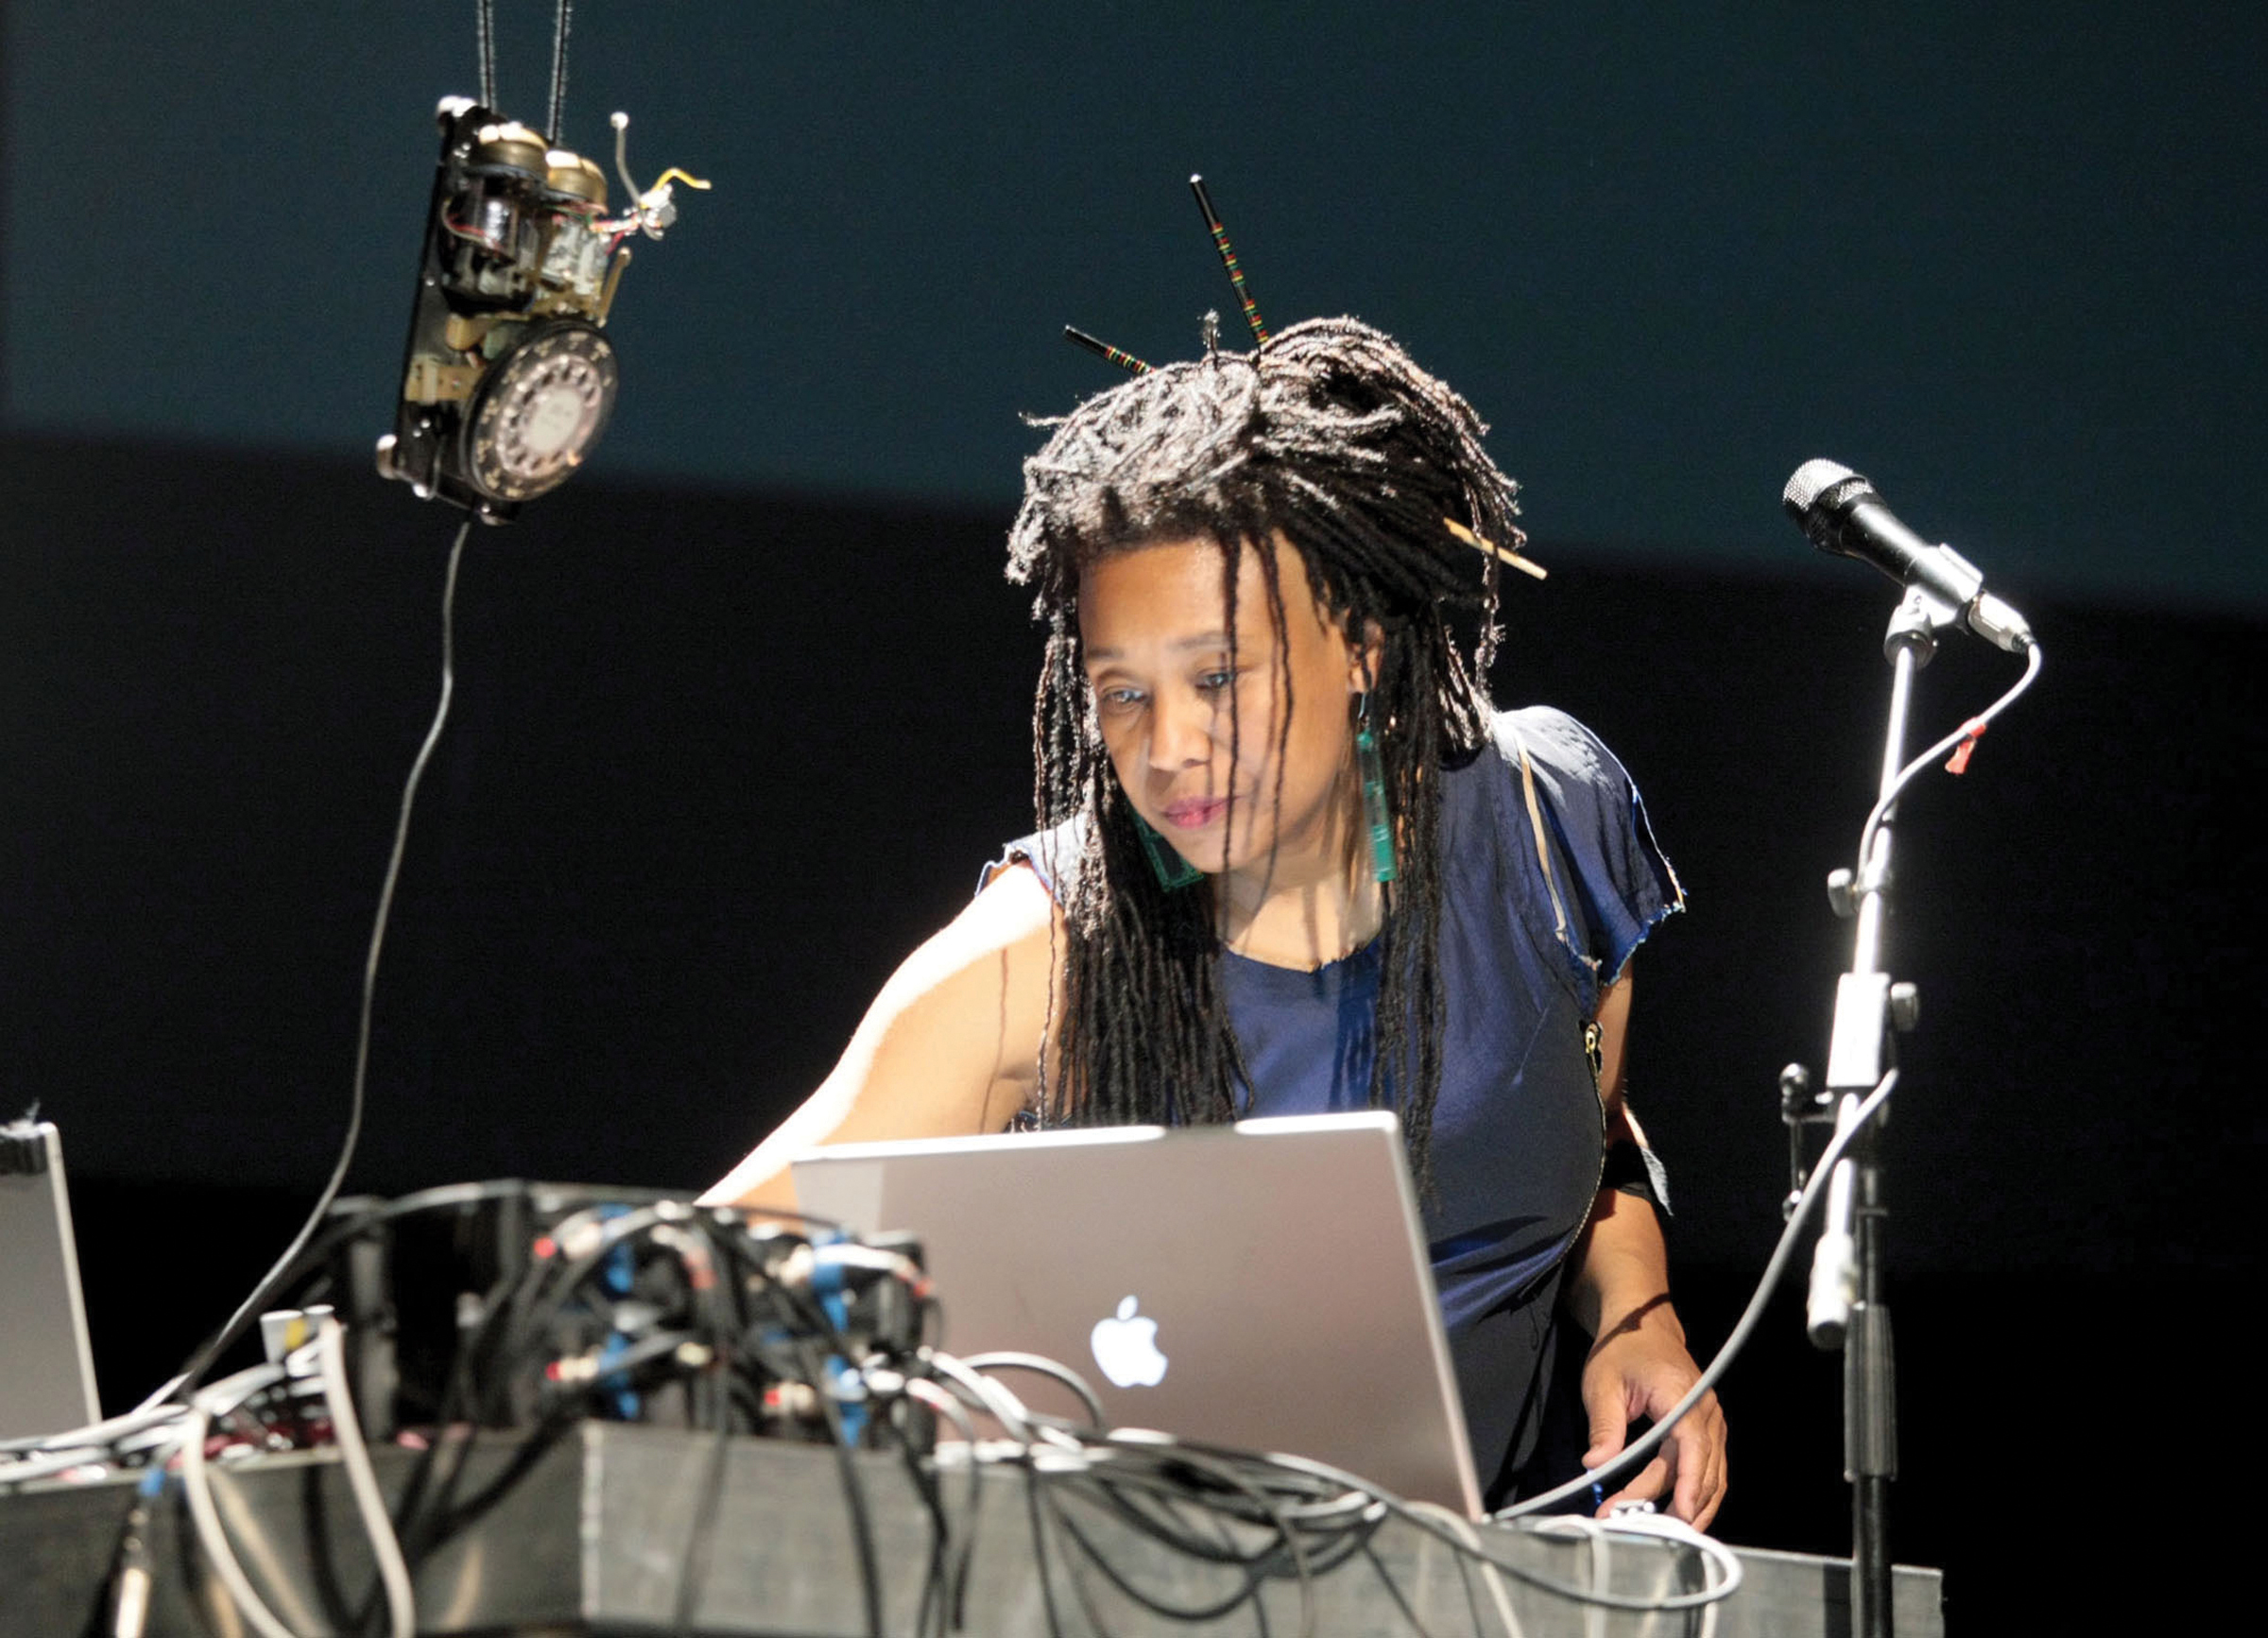 Pamela Z performing at Ars Electronica in Linz, Austria. Photo courtesy of Ars Electronica.